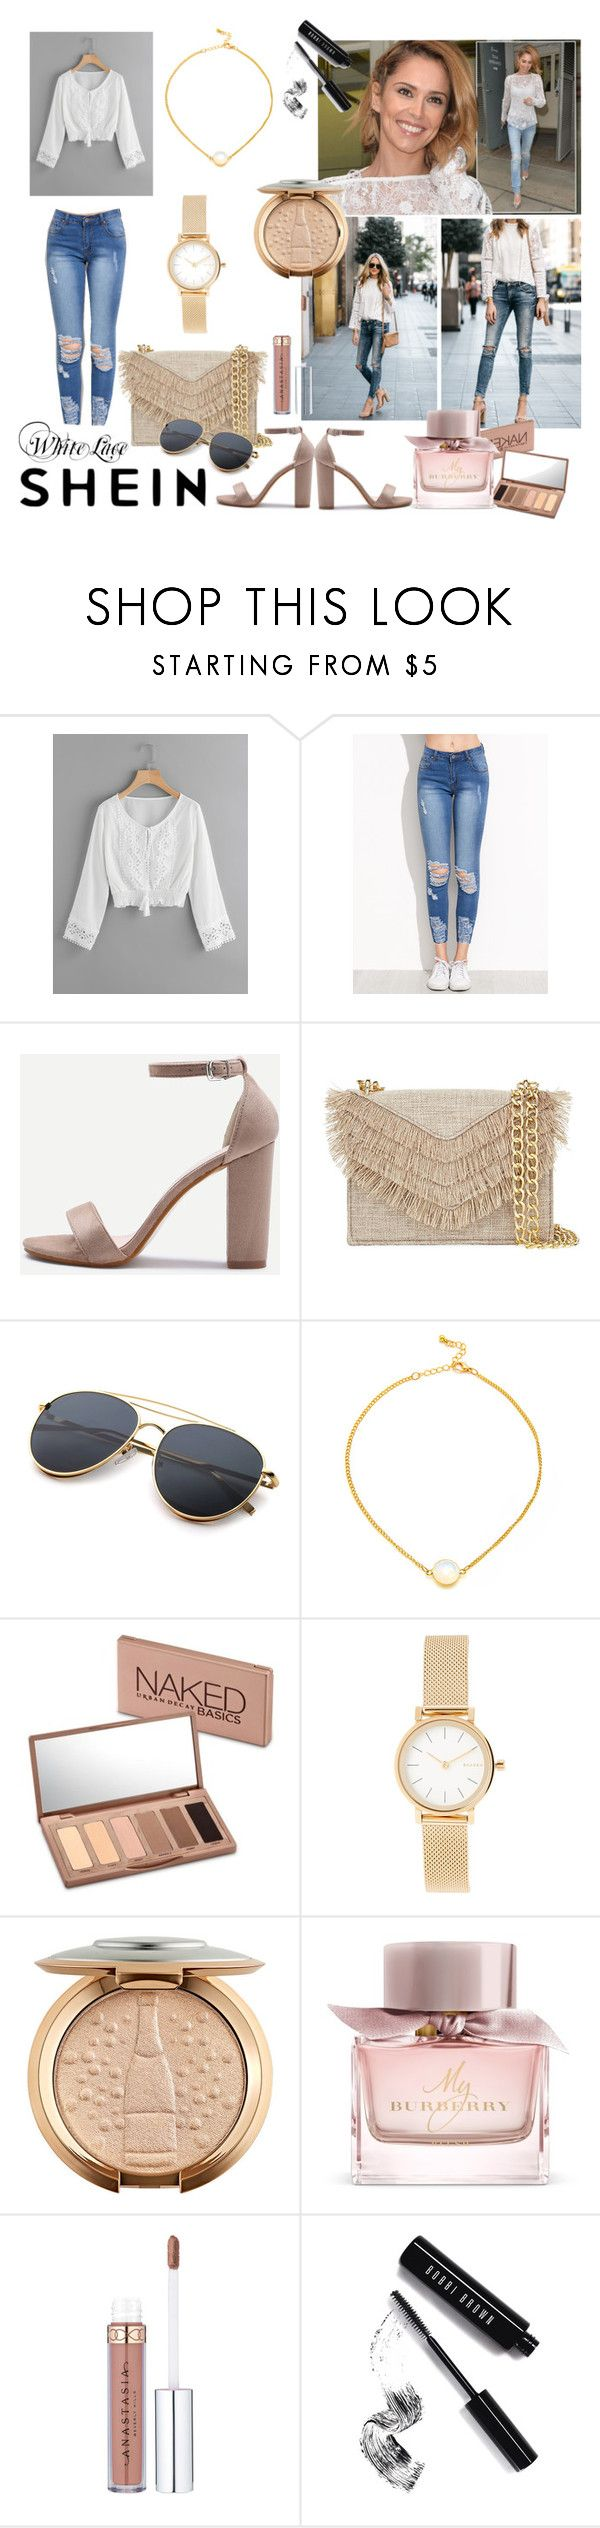 White lace by paisleyvelvetandlace on Polyvore featuring Cynthia Rowley, Skagen, Urban Decay, Bobbi Brown Cosmetics and Burberry